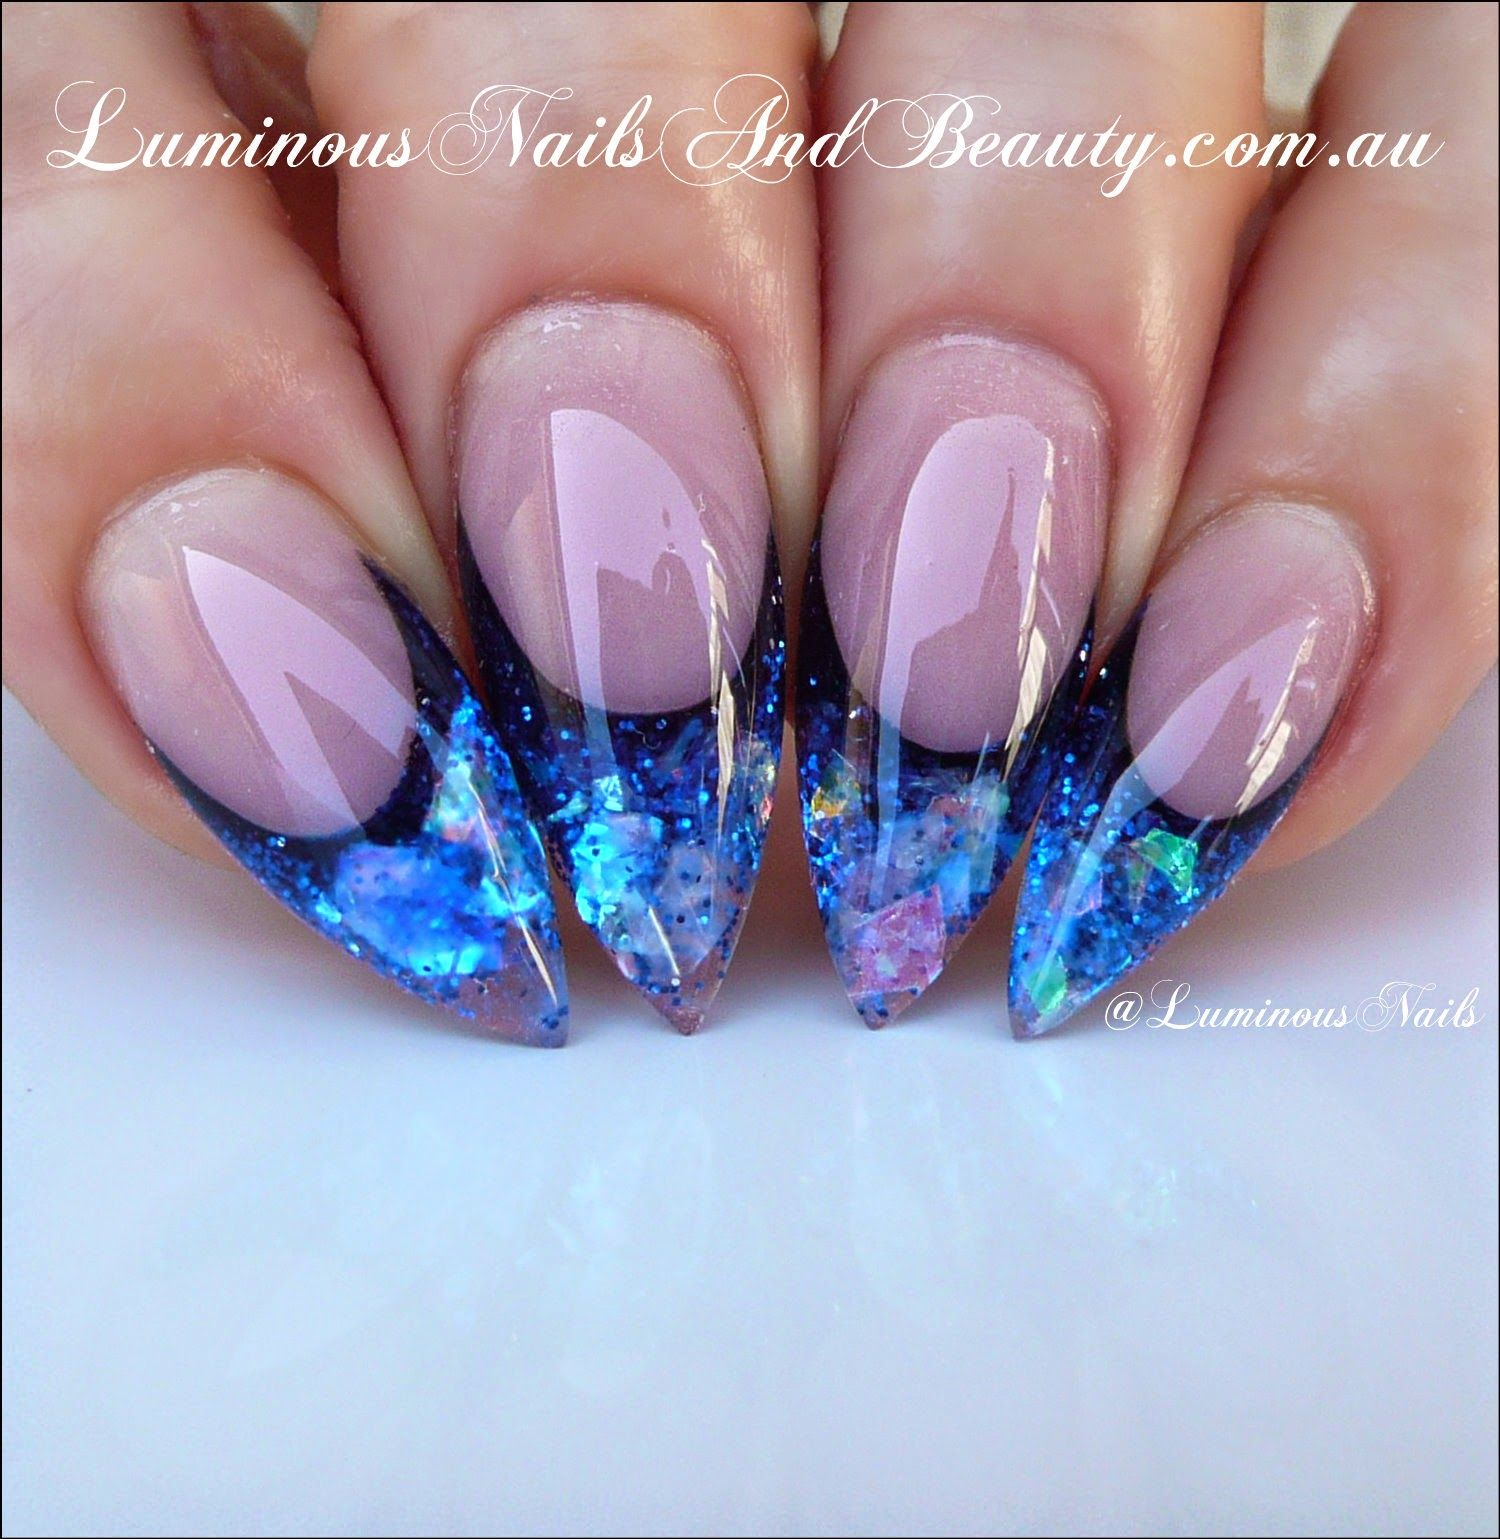 how to build acrylic nails step by step